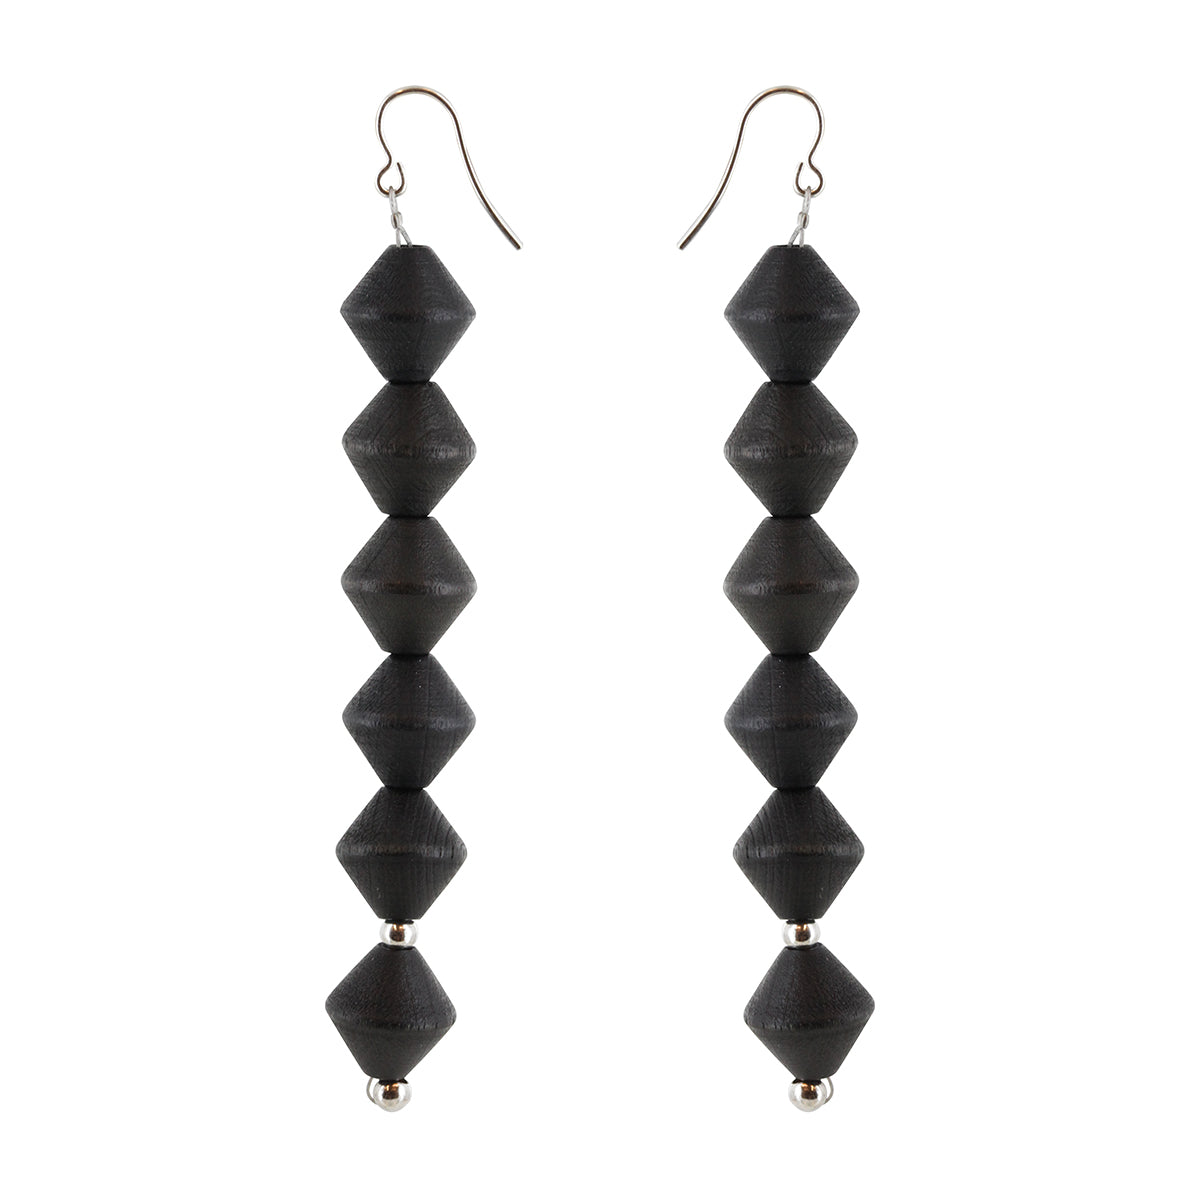 Daalia earrings